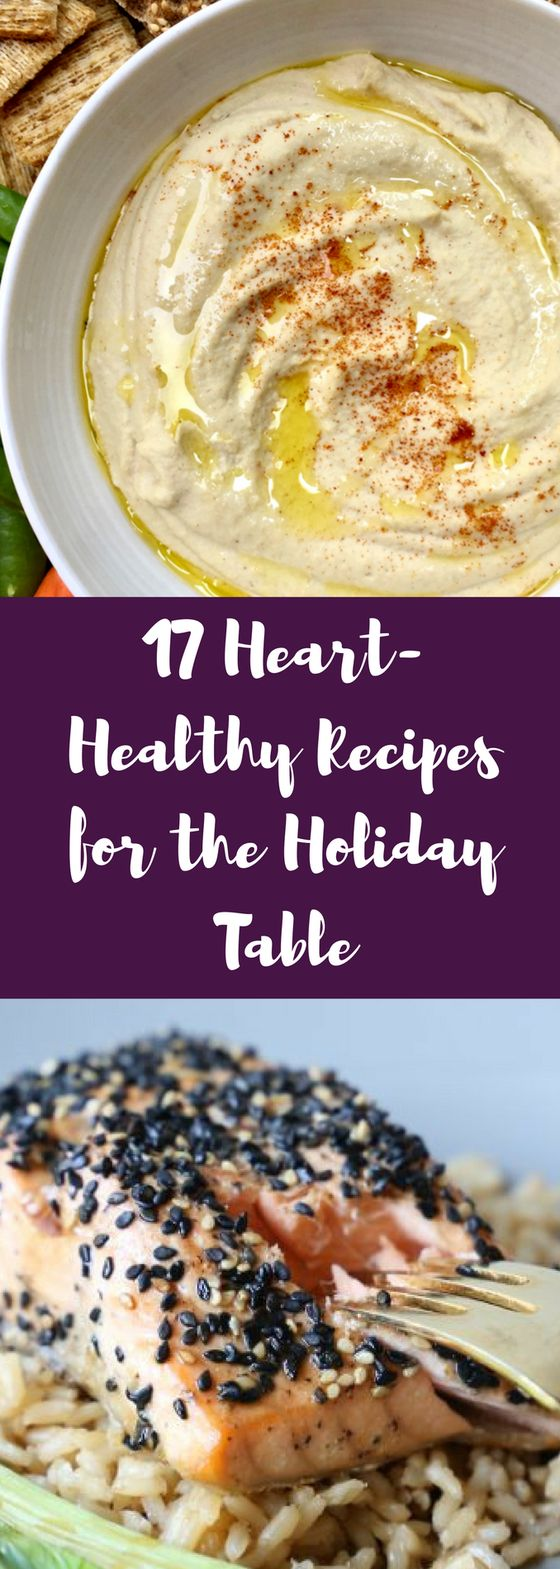 Heart healthy holiday recipes for the win! Here are dinner ideas for Thanksgiving, Christmas, Hanukah and more! #Hearthealth #Thanksgiving #Thanksgiving recipes